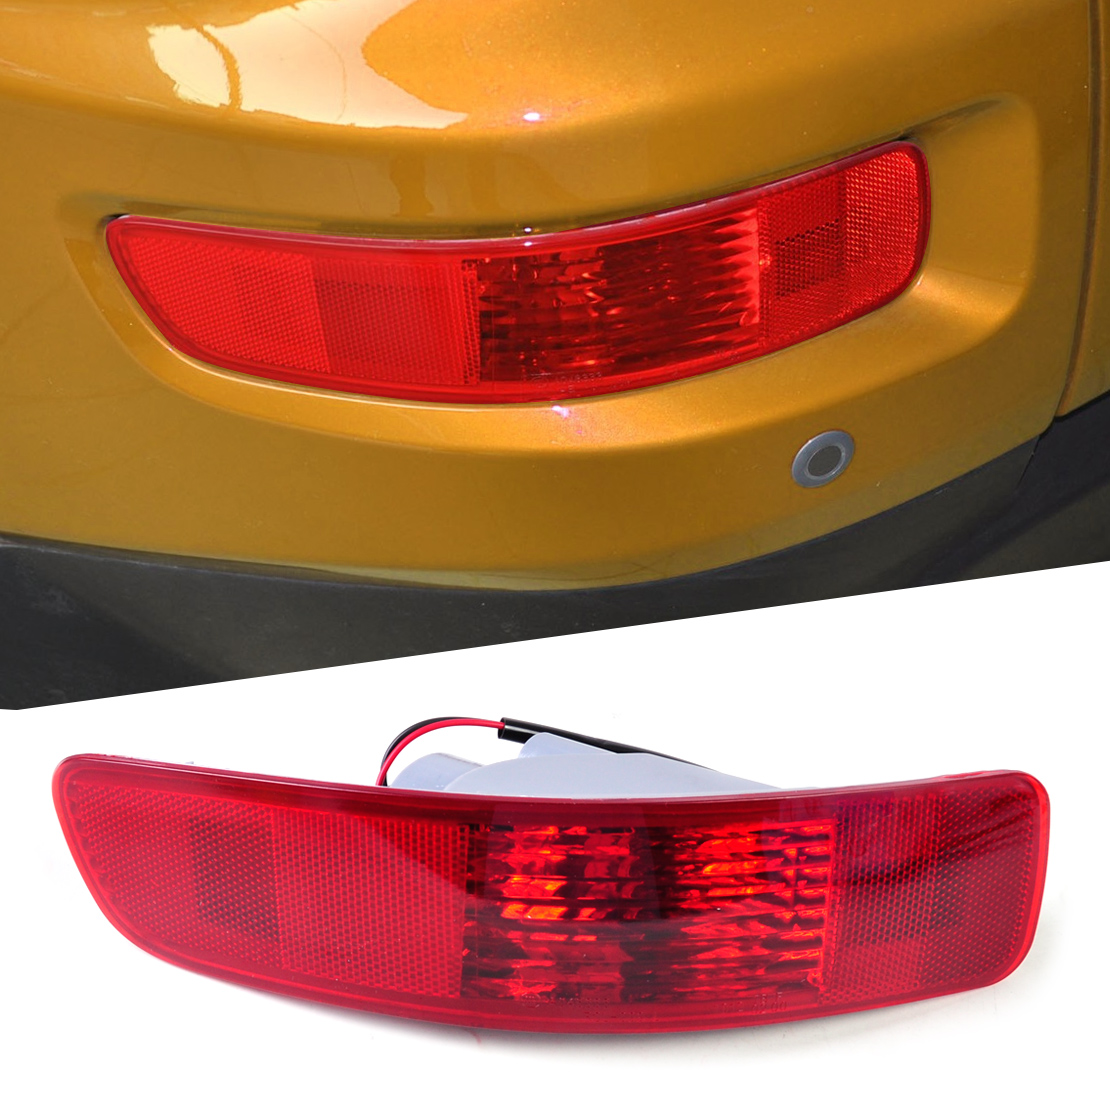 DWCX SL693-LH SL693 Rear Fog Lamp Light Left Side for Mitsubishi Outlander 2007 2008 2009 2010 2011 2012 2013 car modification lamp fog lamps safety light h11 12v 55w suitable for mitsubishi triton l200 2009 2010 2011 2012 on